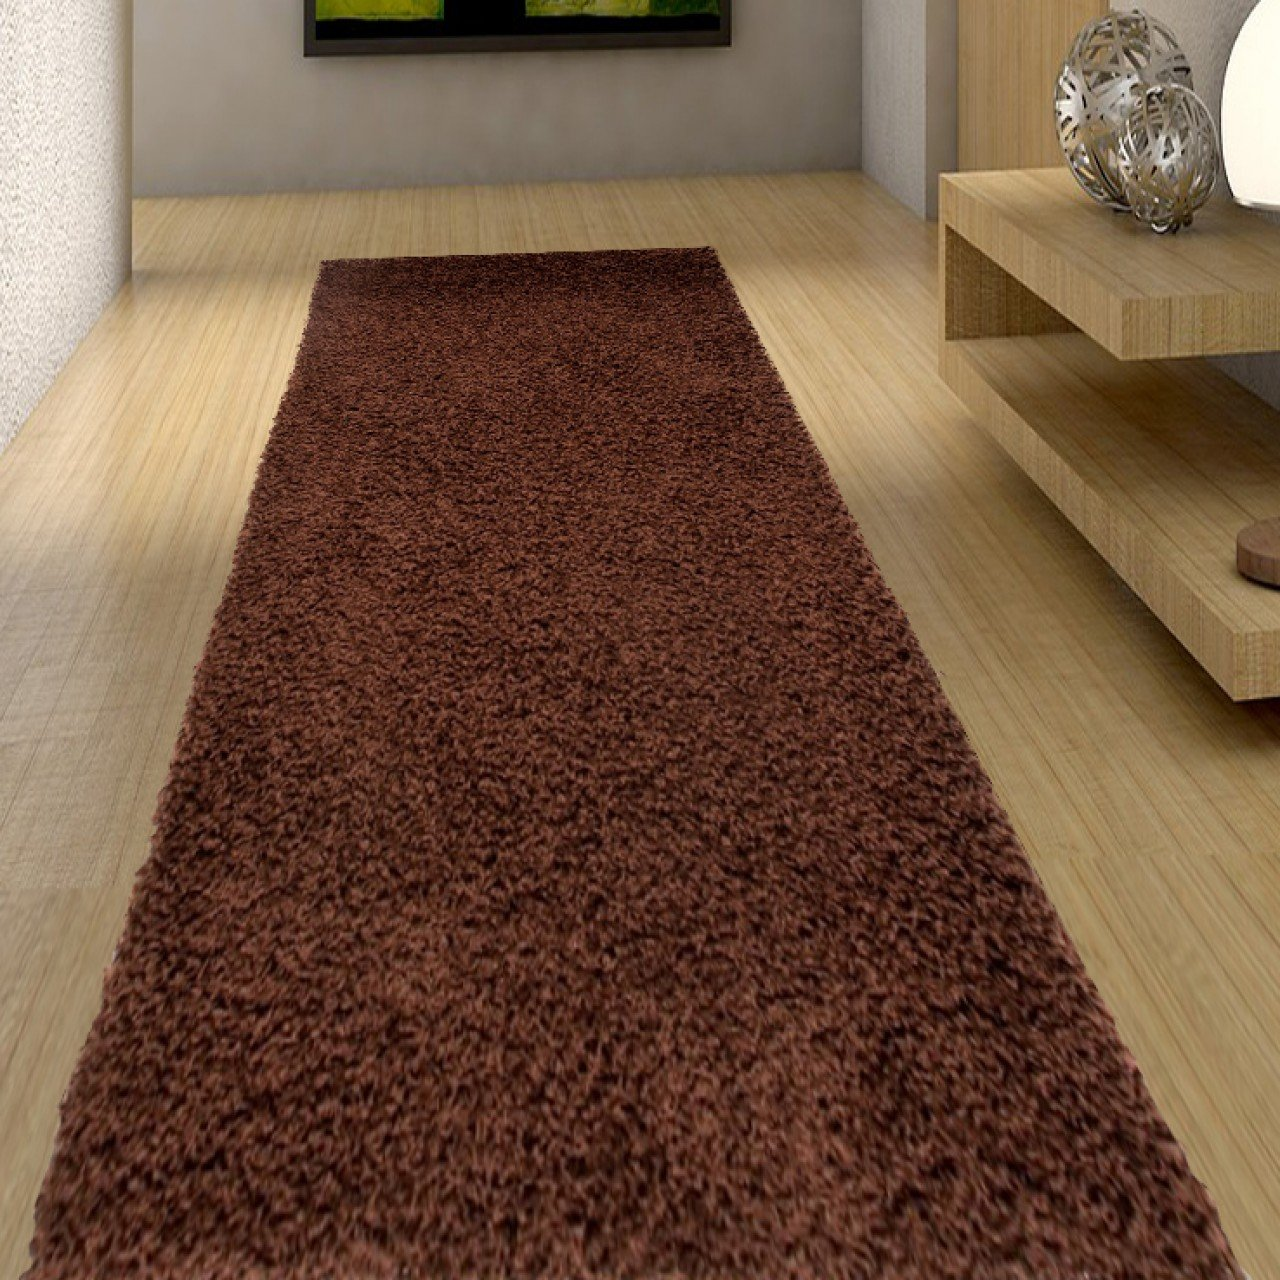 Brown Shaggy Runner With Soft And Very Thick Frise 80 x 250 cm (2ft7 x 8ft2) Tapiso